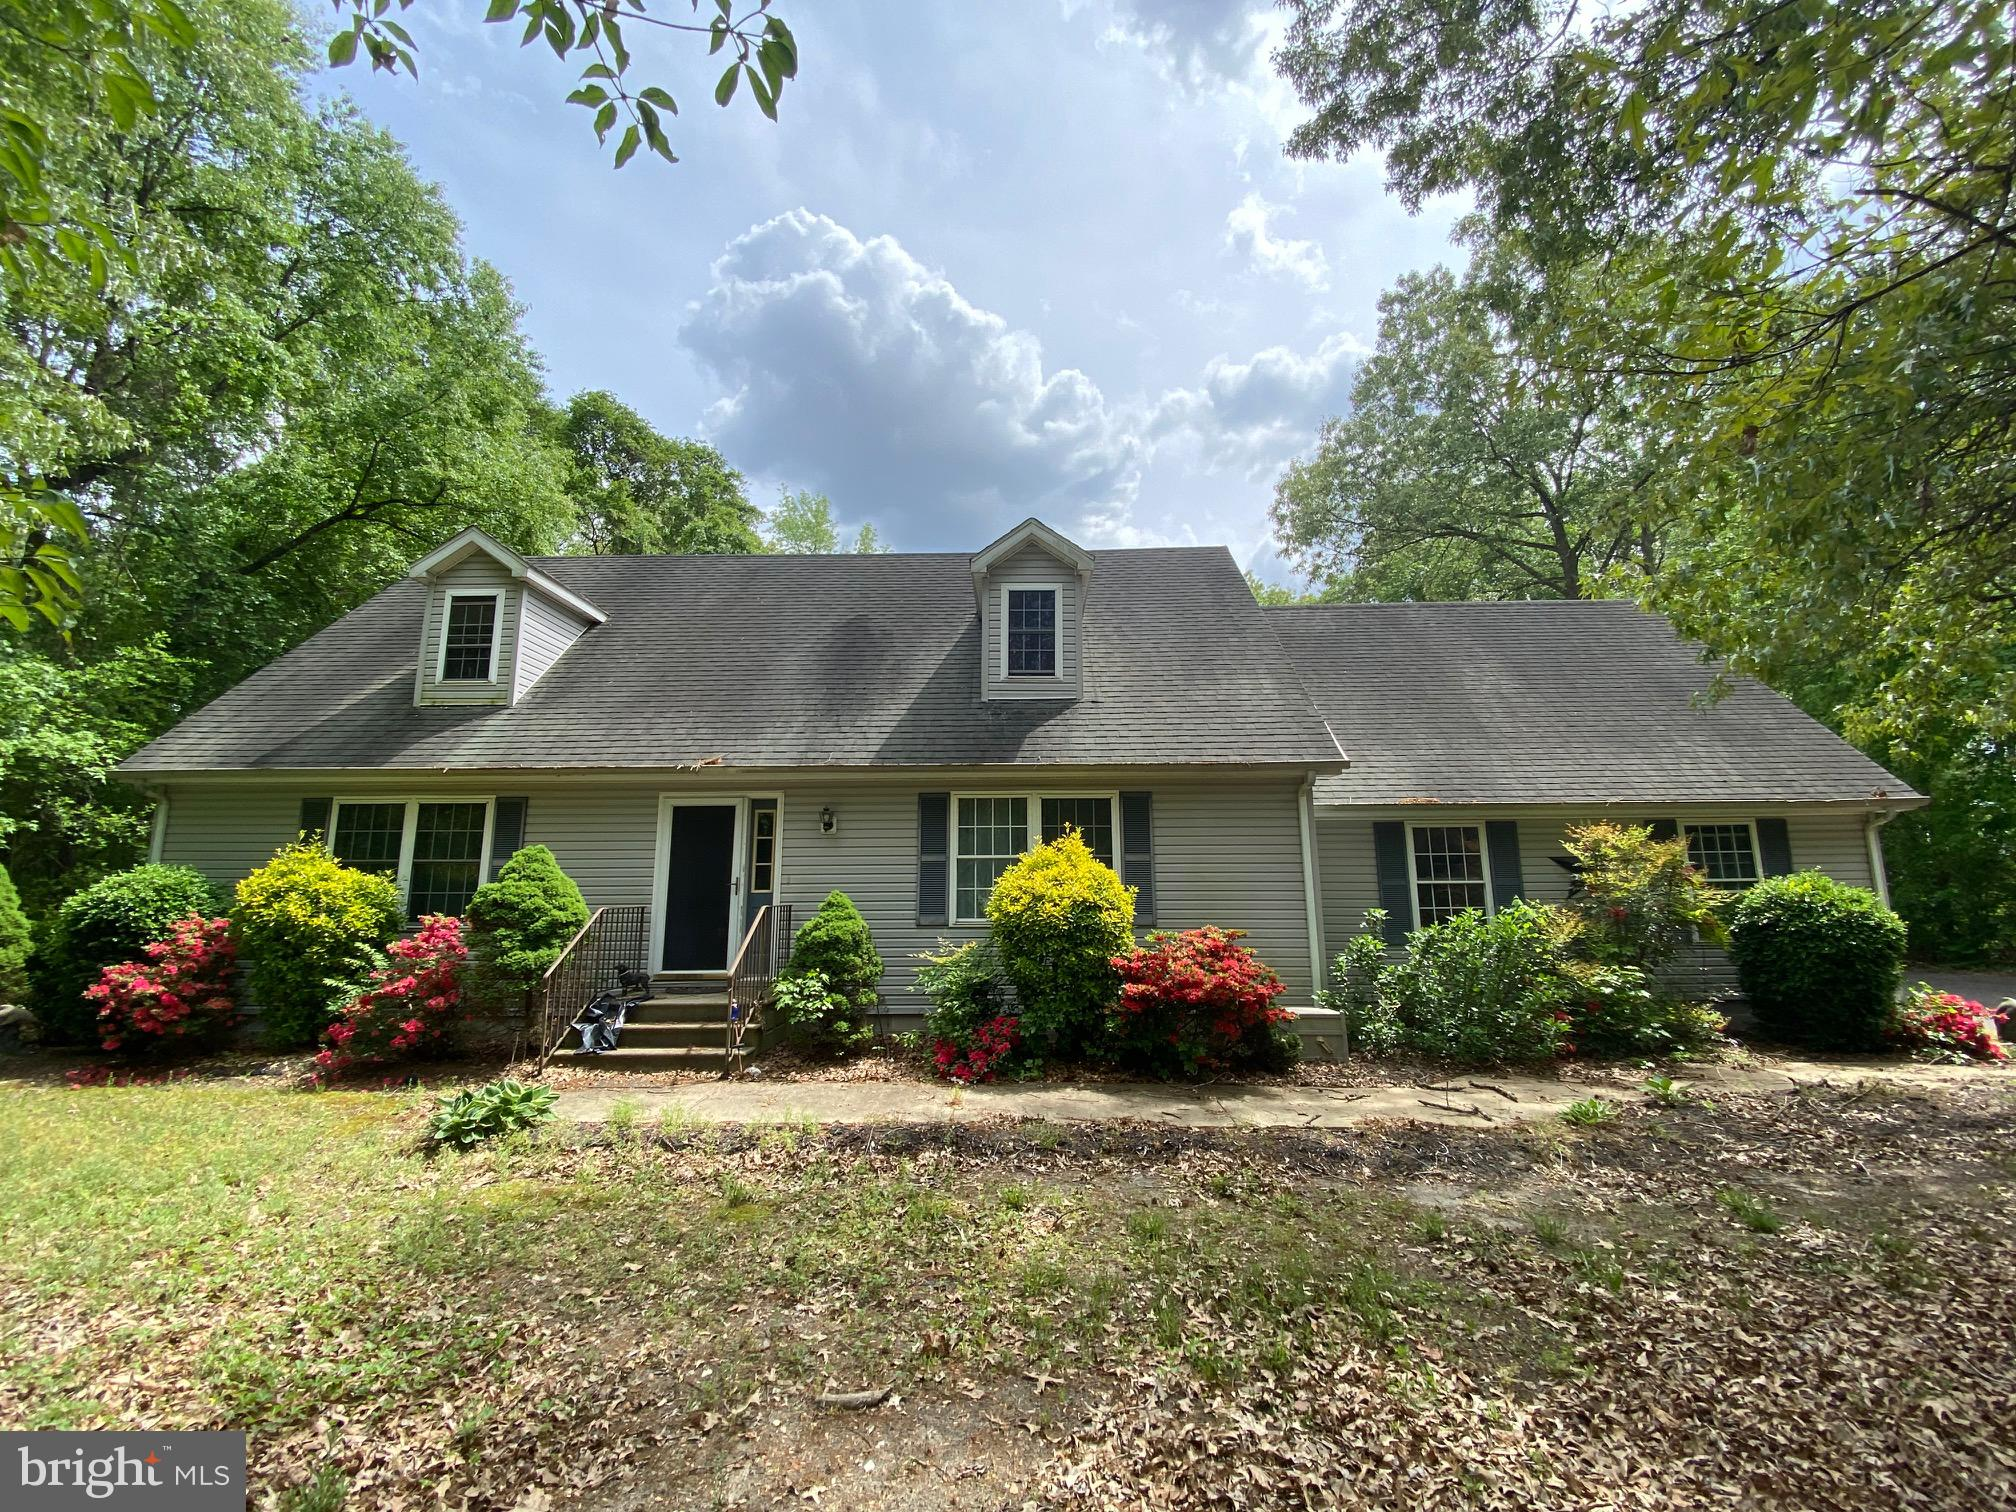 Nice 3 bedroom cape cod on wooded country acre lot! Fresh paint & flooring! All appliances included! Attached 2 car garage & fenced backyyard! Relax on the big back deck & enjoy the rustic seclusion! Make Offers!